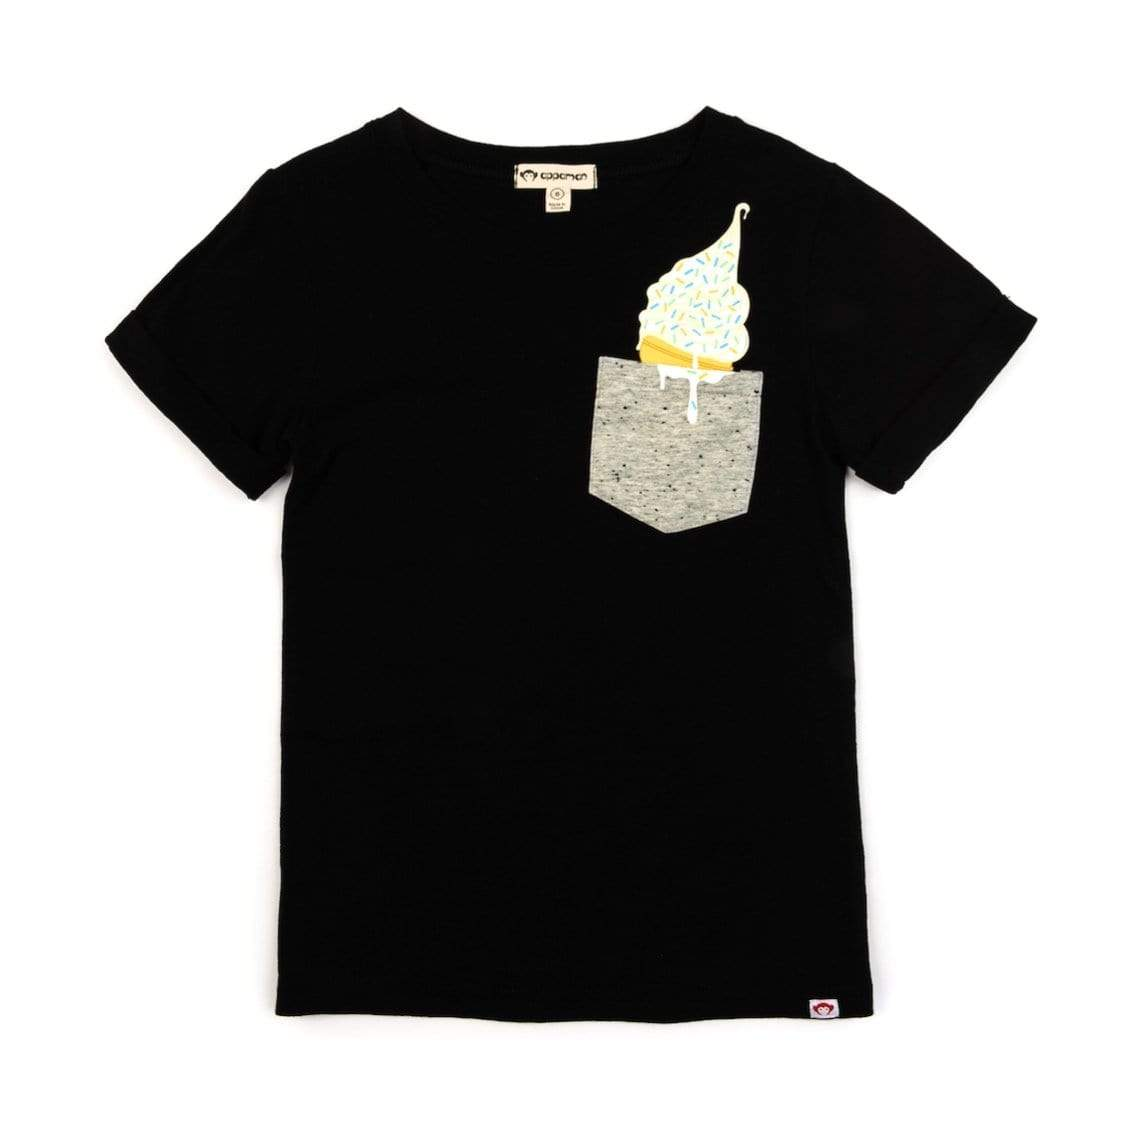 V1DAY-BL Appaman Day Trip Graphic Tee - Black Short Sleeve Shirts Appaman